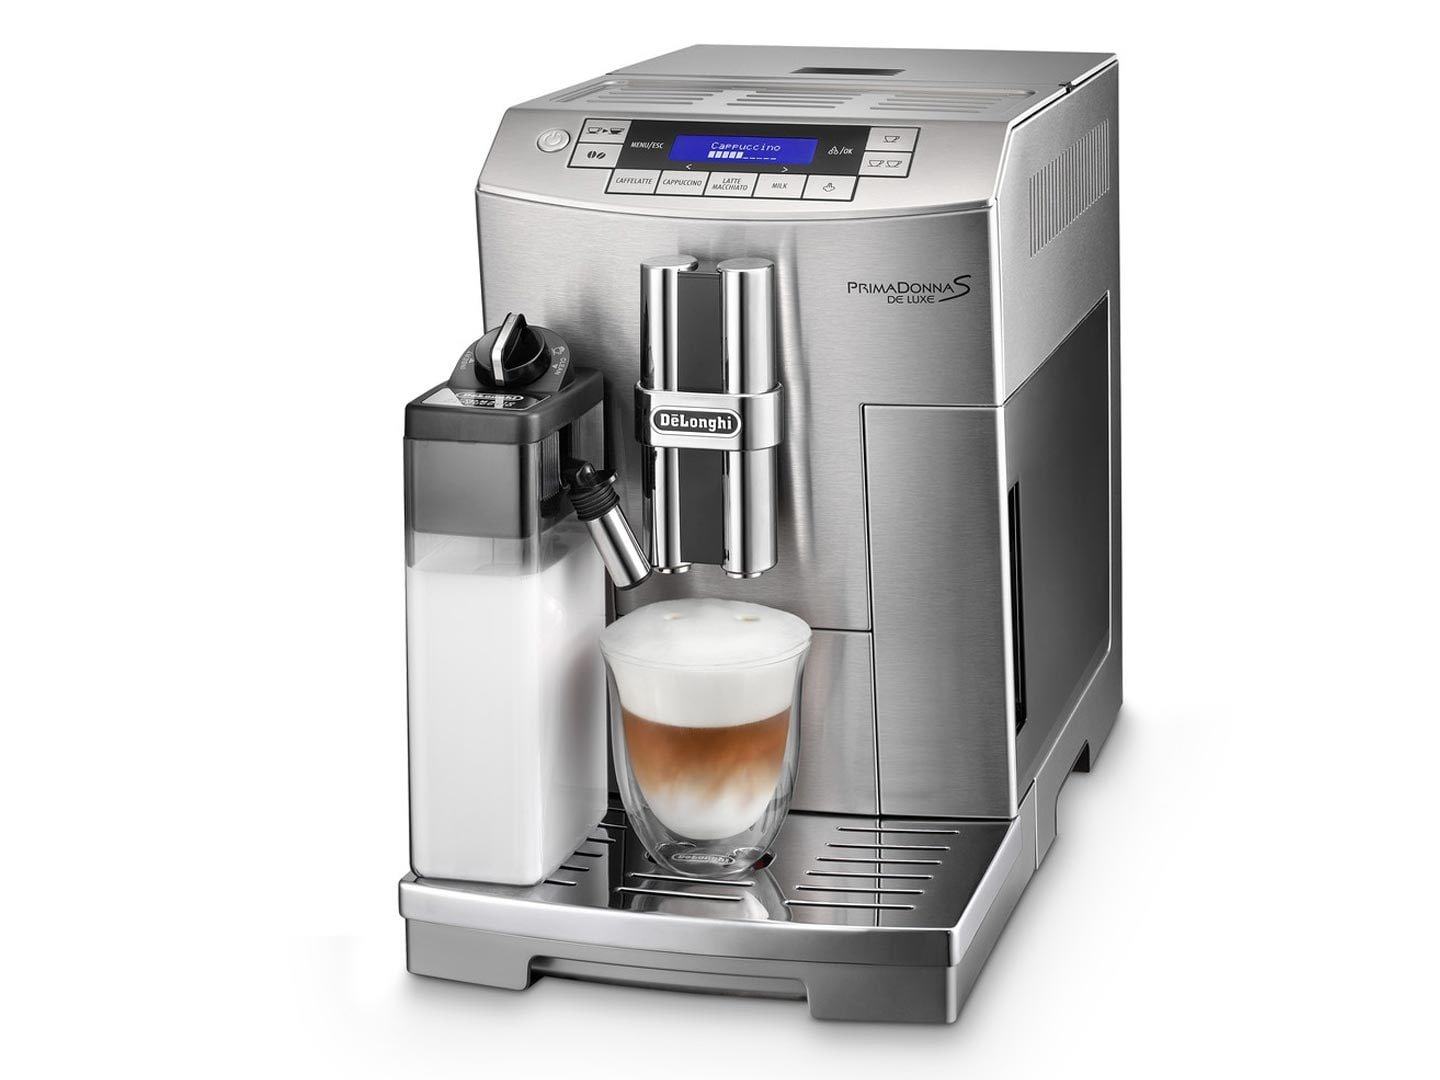 ECAM28465M_3 4bianco bean to cup coffee machines de'longhi uk  at bayanpartner.co